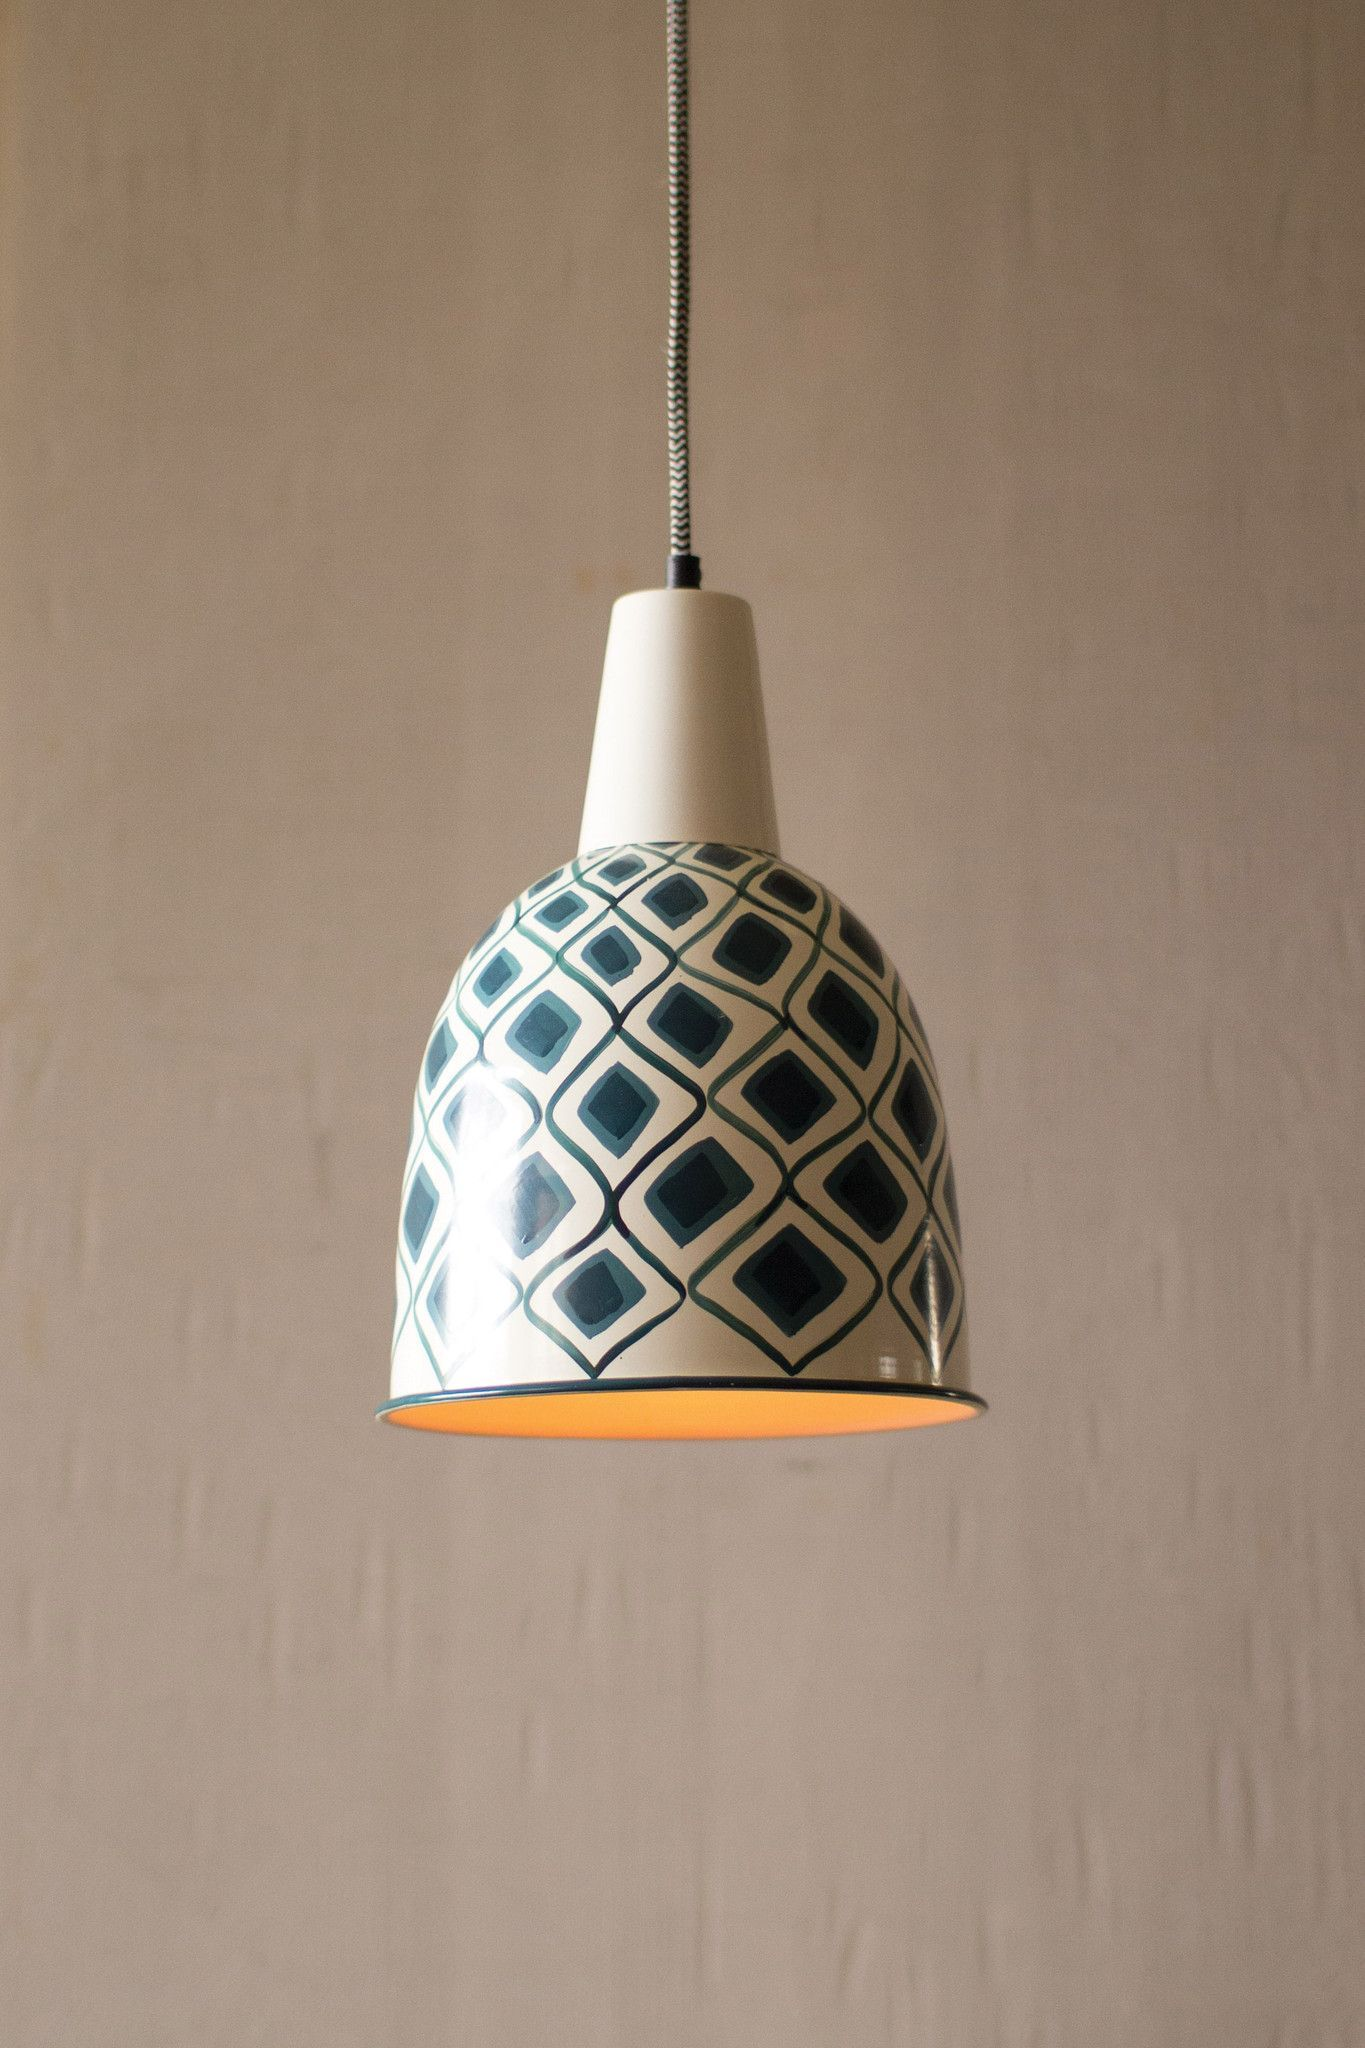 PENDANT LAMPS WITH HAND PAINTED DESIGNS WITH BLACK & WHITE FABRIC CORDS - Comes in 2 Colors